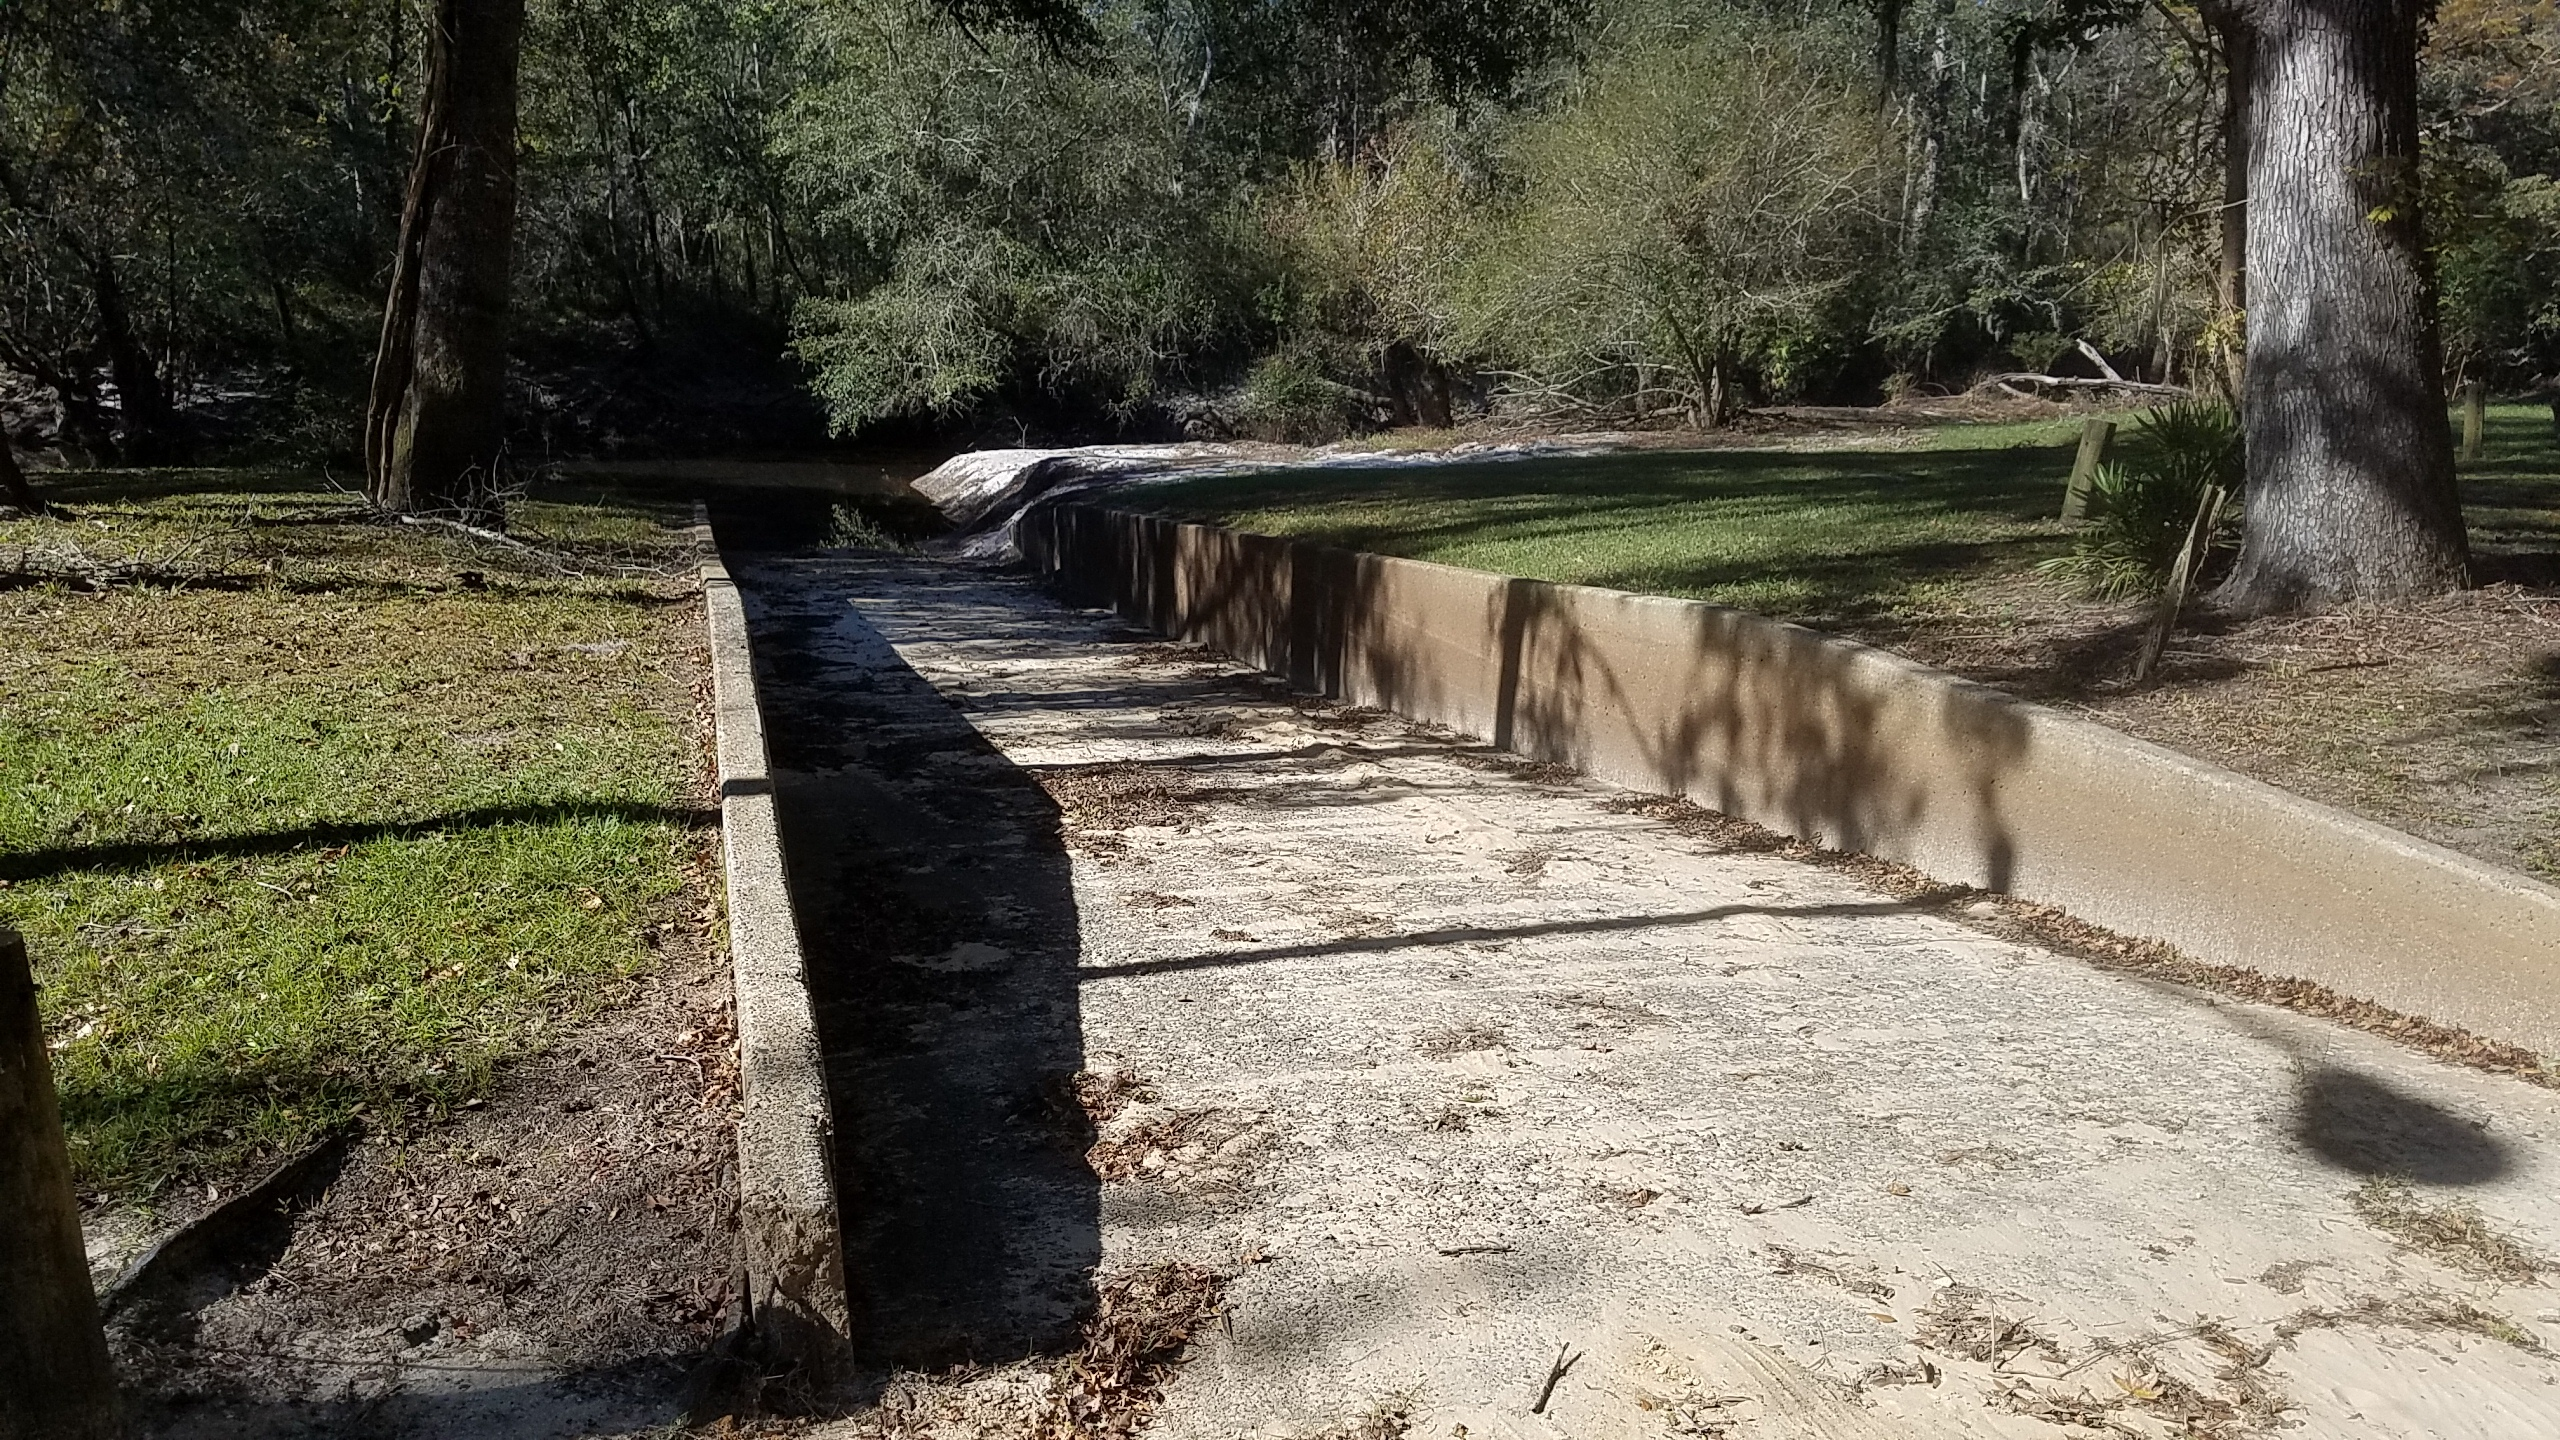 2560x1440 No sand bar, 11:13:35, 30.8993523, -83.3326798, Boat Ramp, in Langdale Park open, by John S. Quarterman, for WWALS.net, 1 November 2017